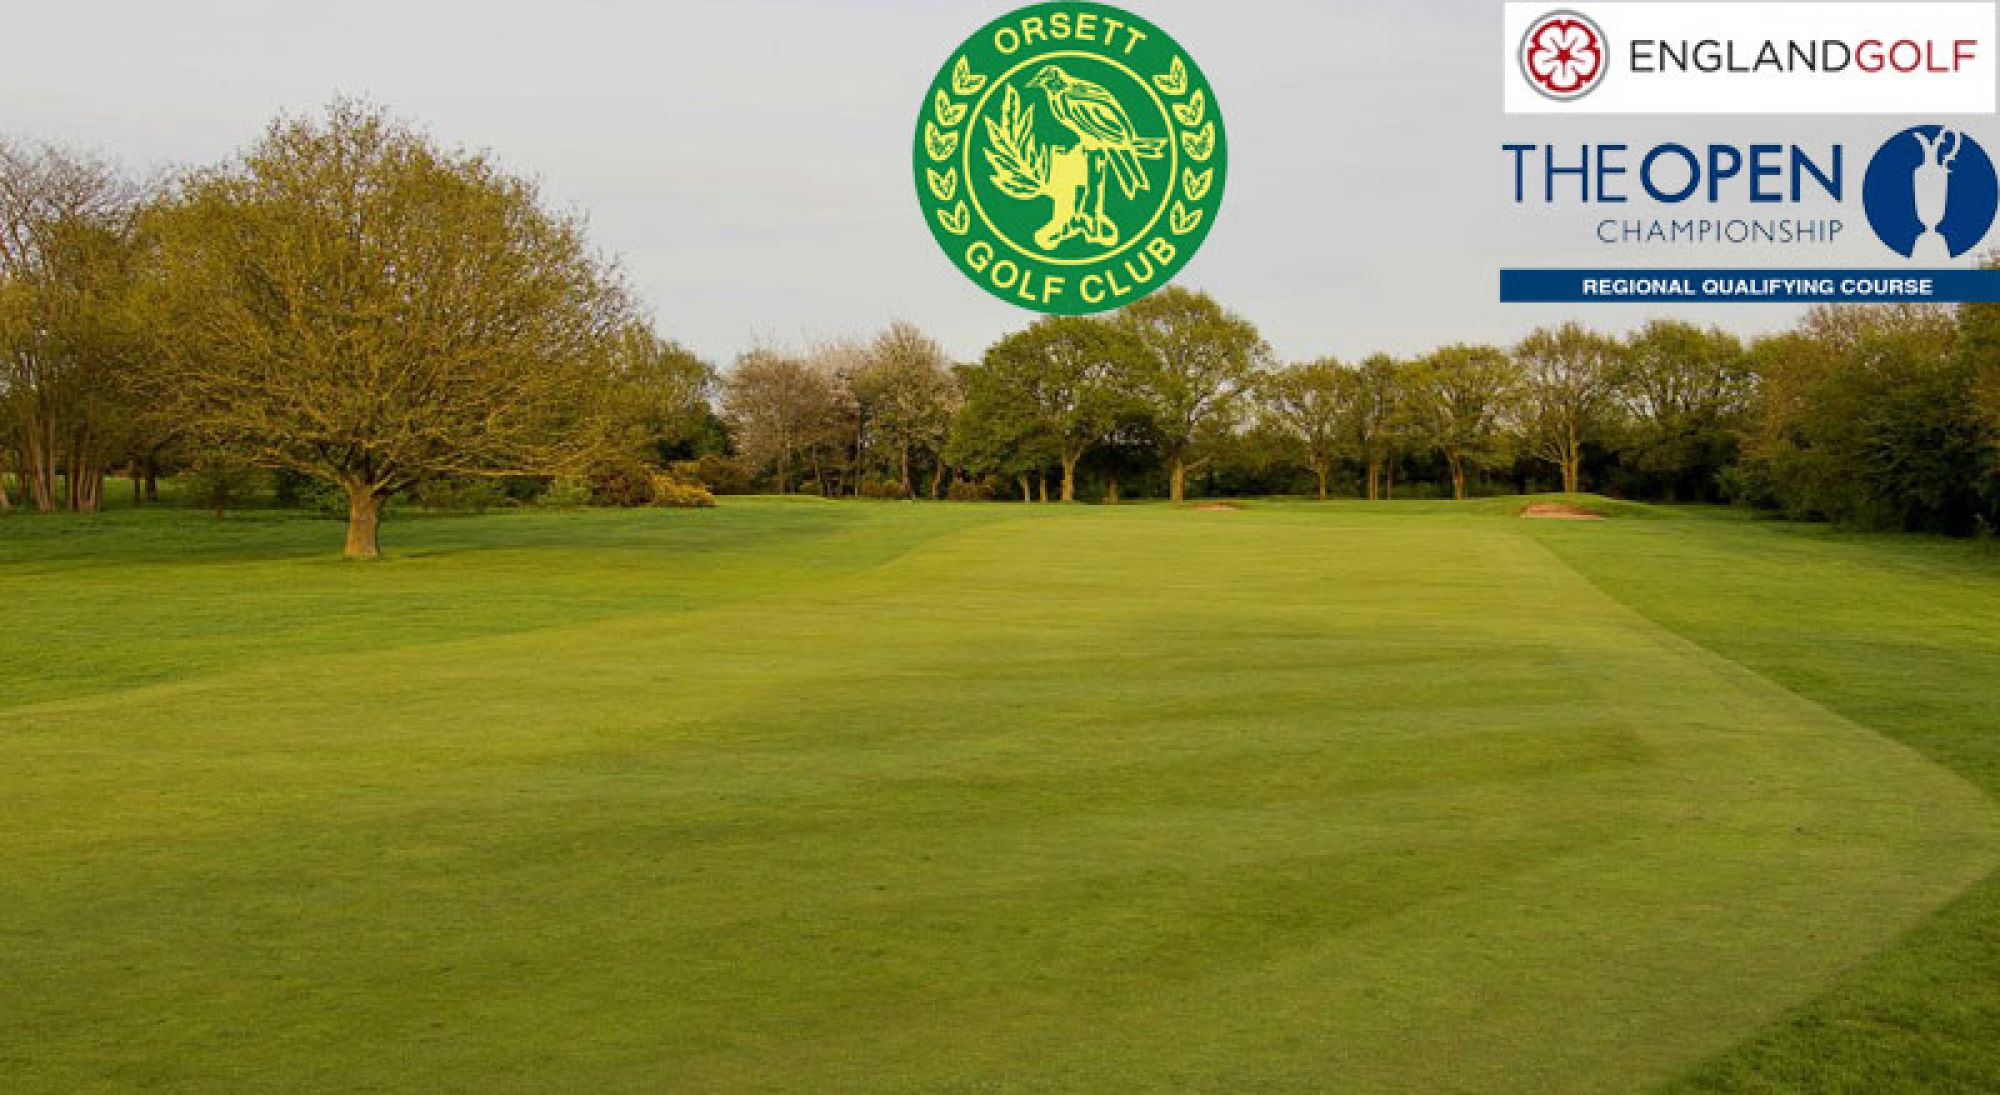 View Orsett Golf Club's lovely golf course in vibrant Essex.